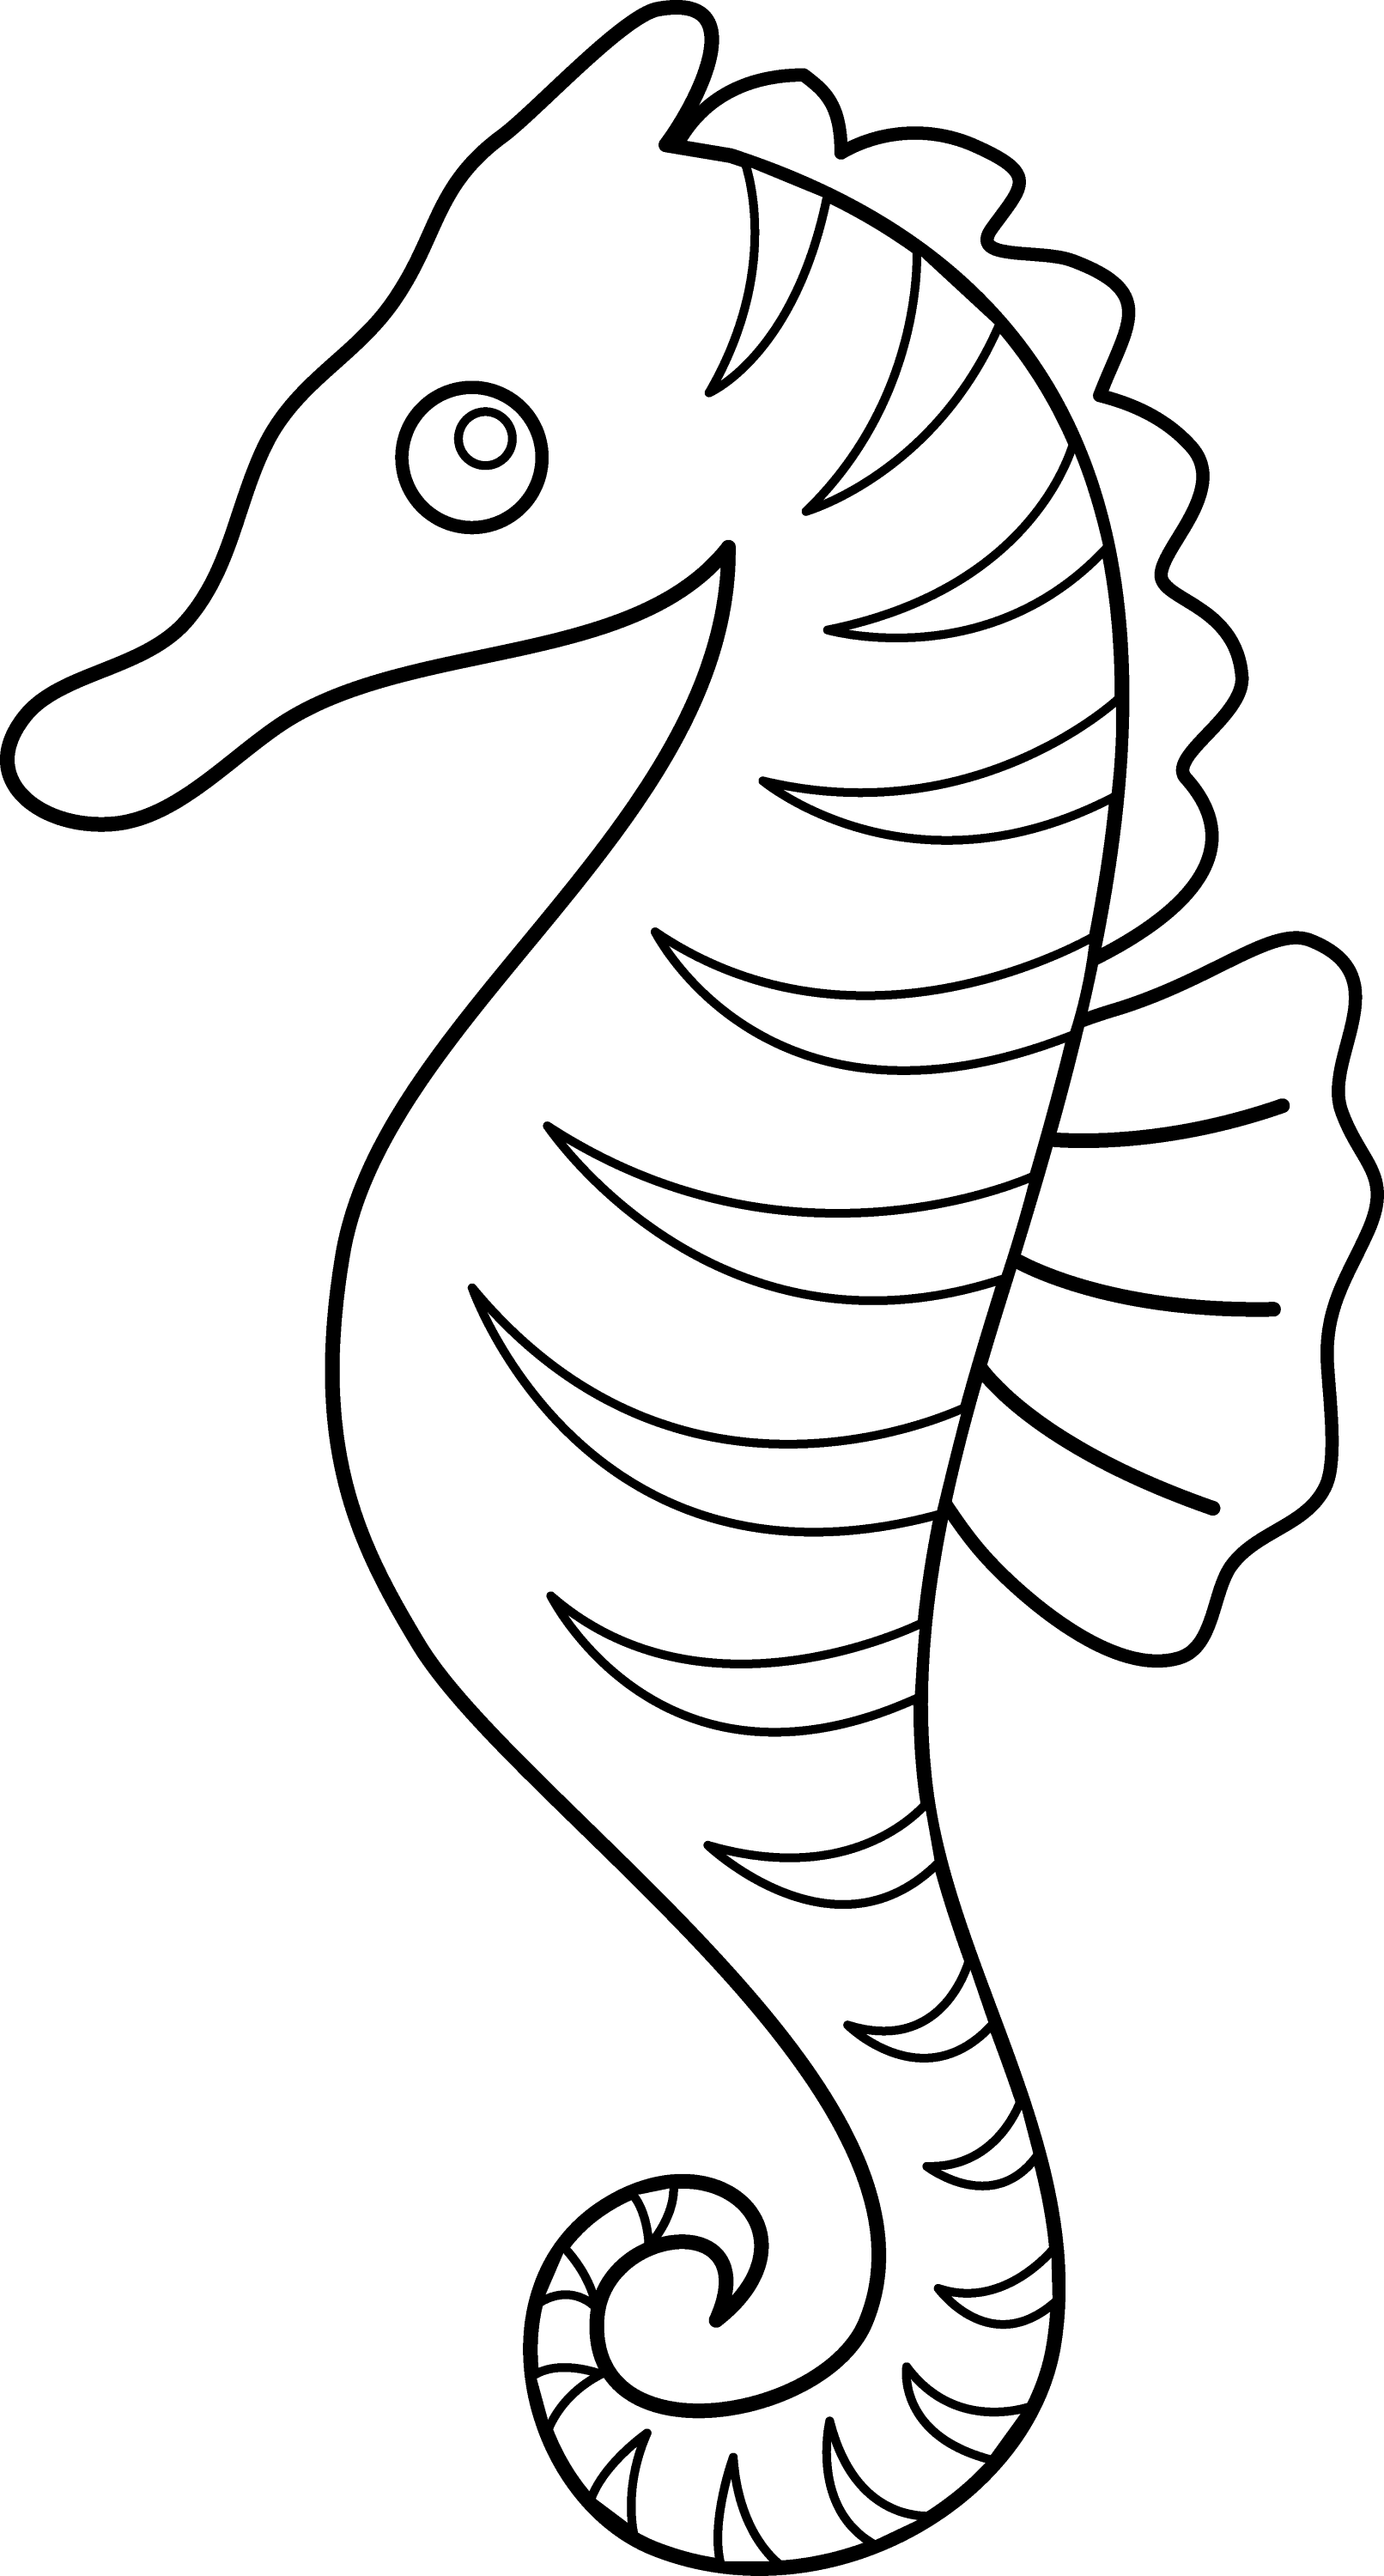 seahorse coloring sheet a very cute baby seahorse coloring page kids play color seahorse sheet coloring